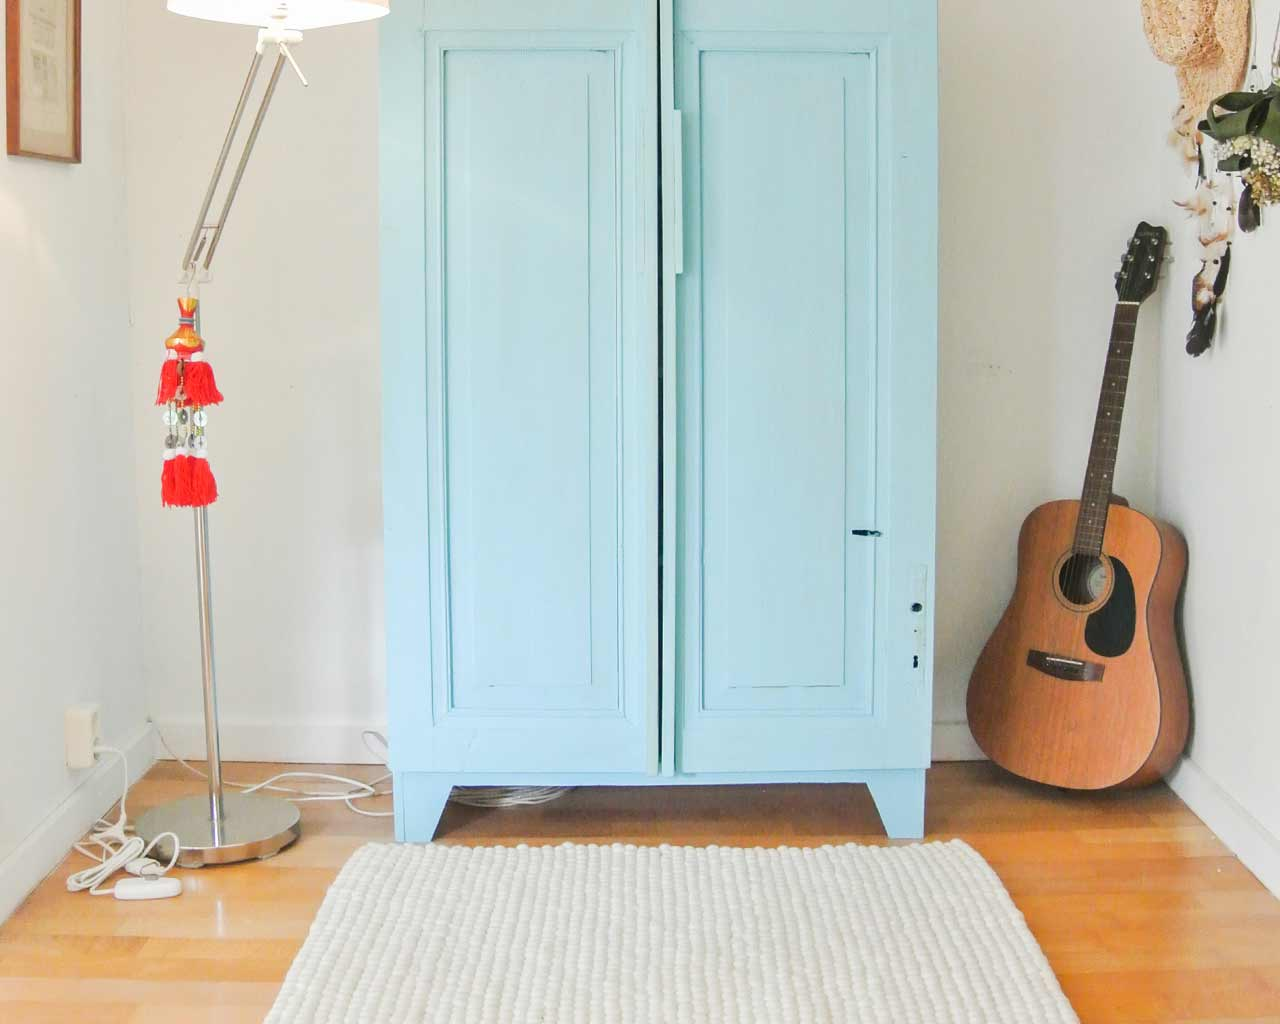 white rug guitar blue cupboard